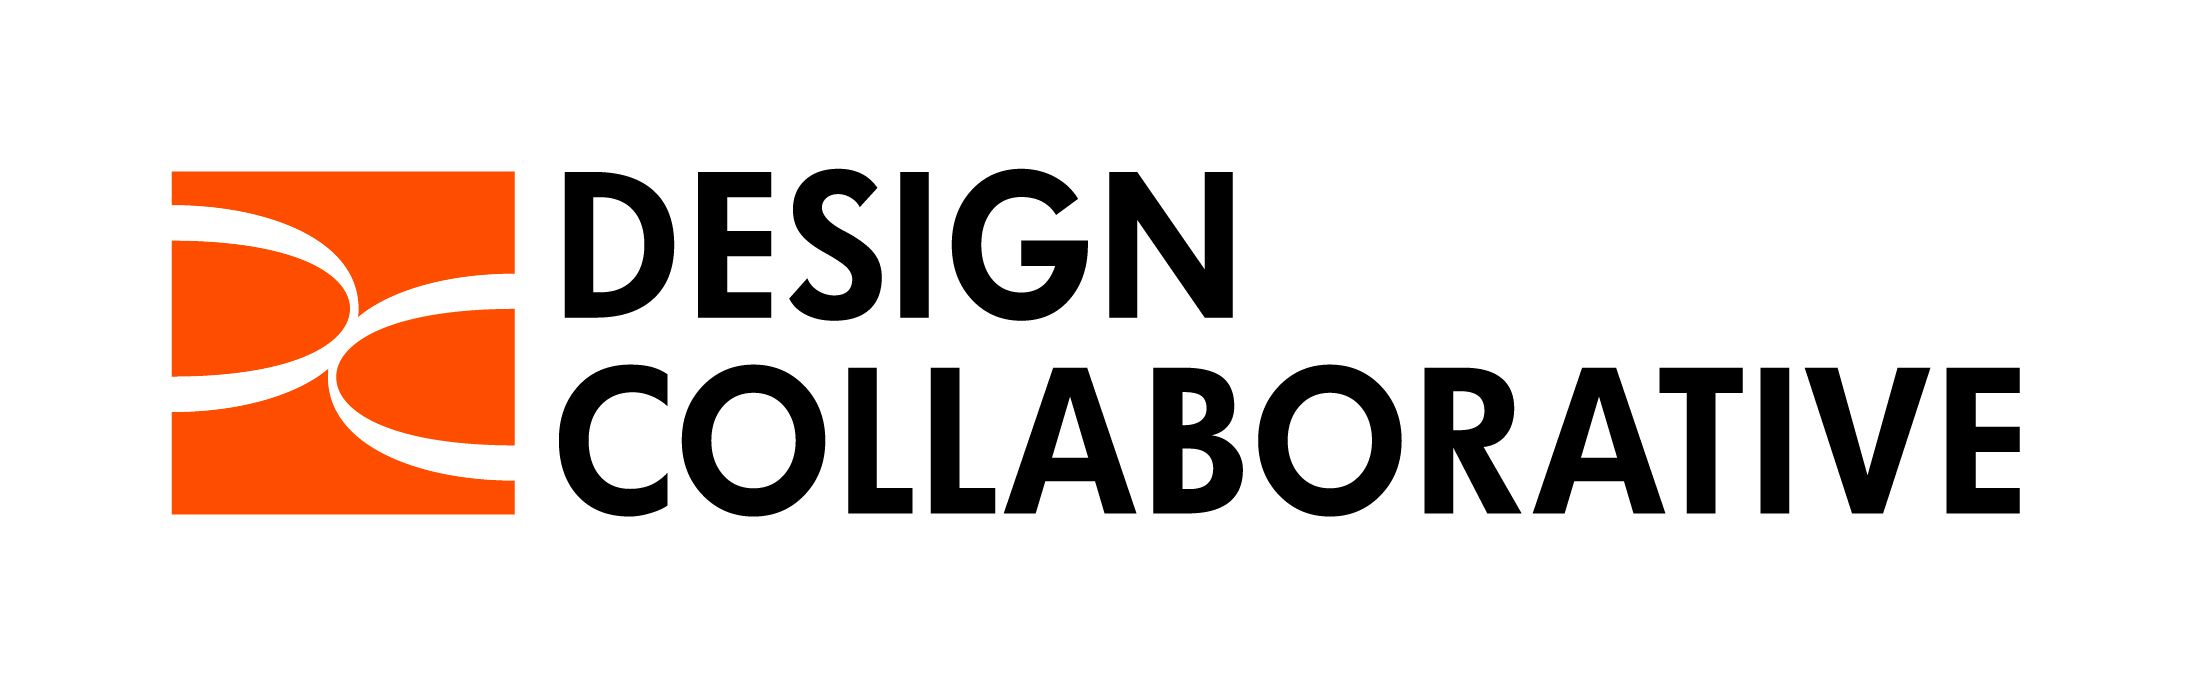 Design Collaborative Logo